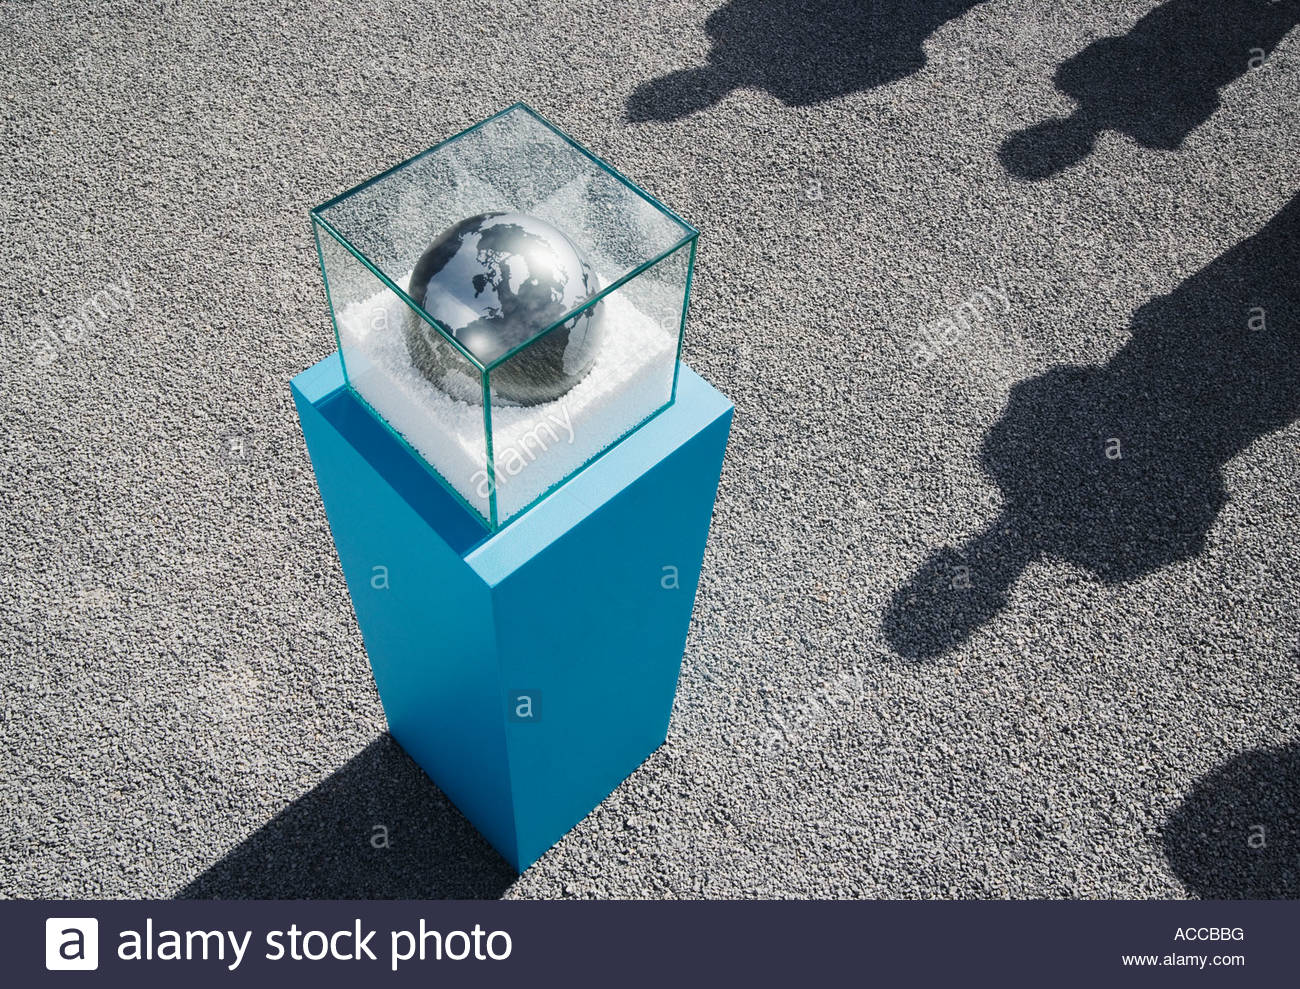 Globe in glass box on pedestal with four long shadows outdoors - Stock Image